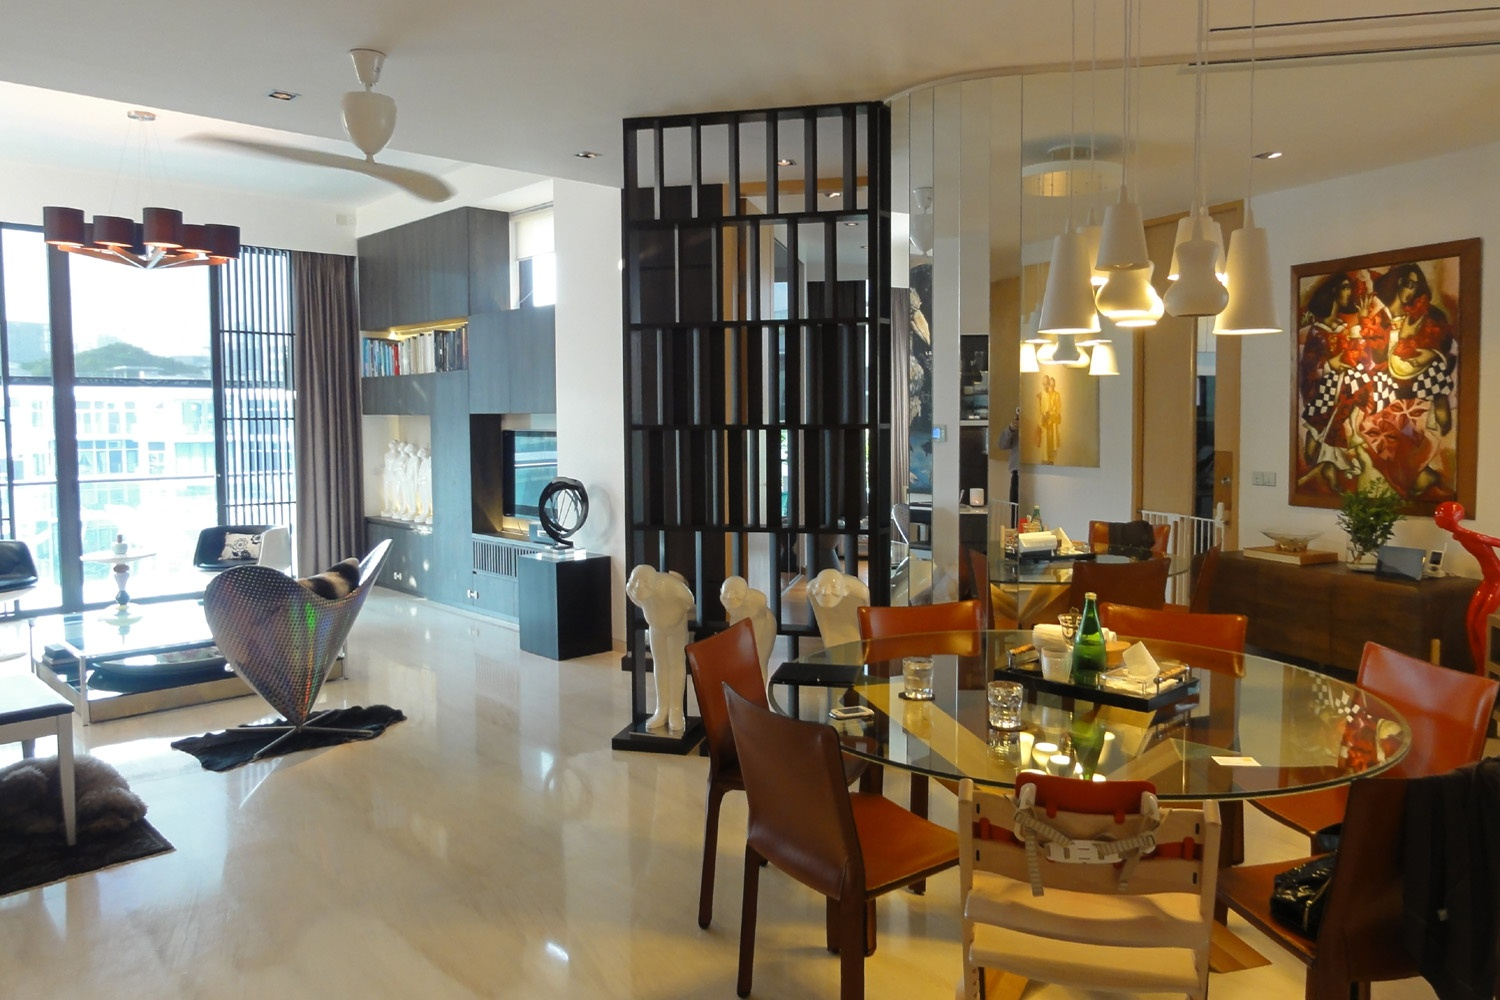 <b>Singapore</b><br/><i>4 Bedrooms, 4,004 sq. ft.</i><br/>Penthouse in the heart of Orchard's prime area